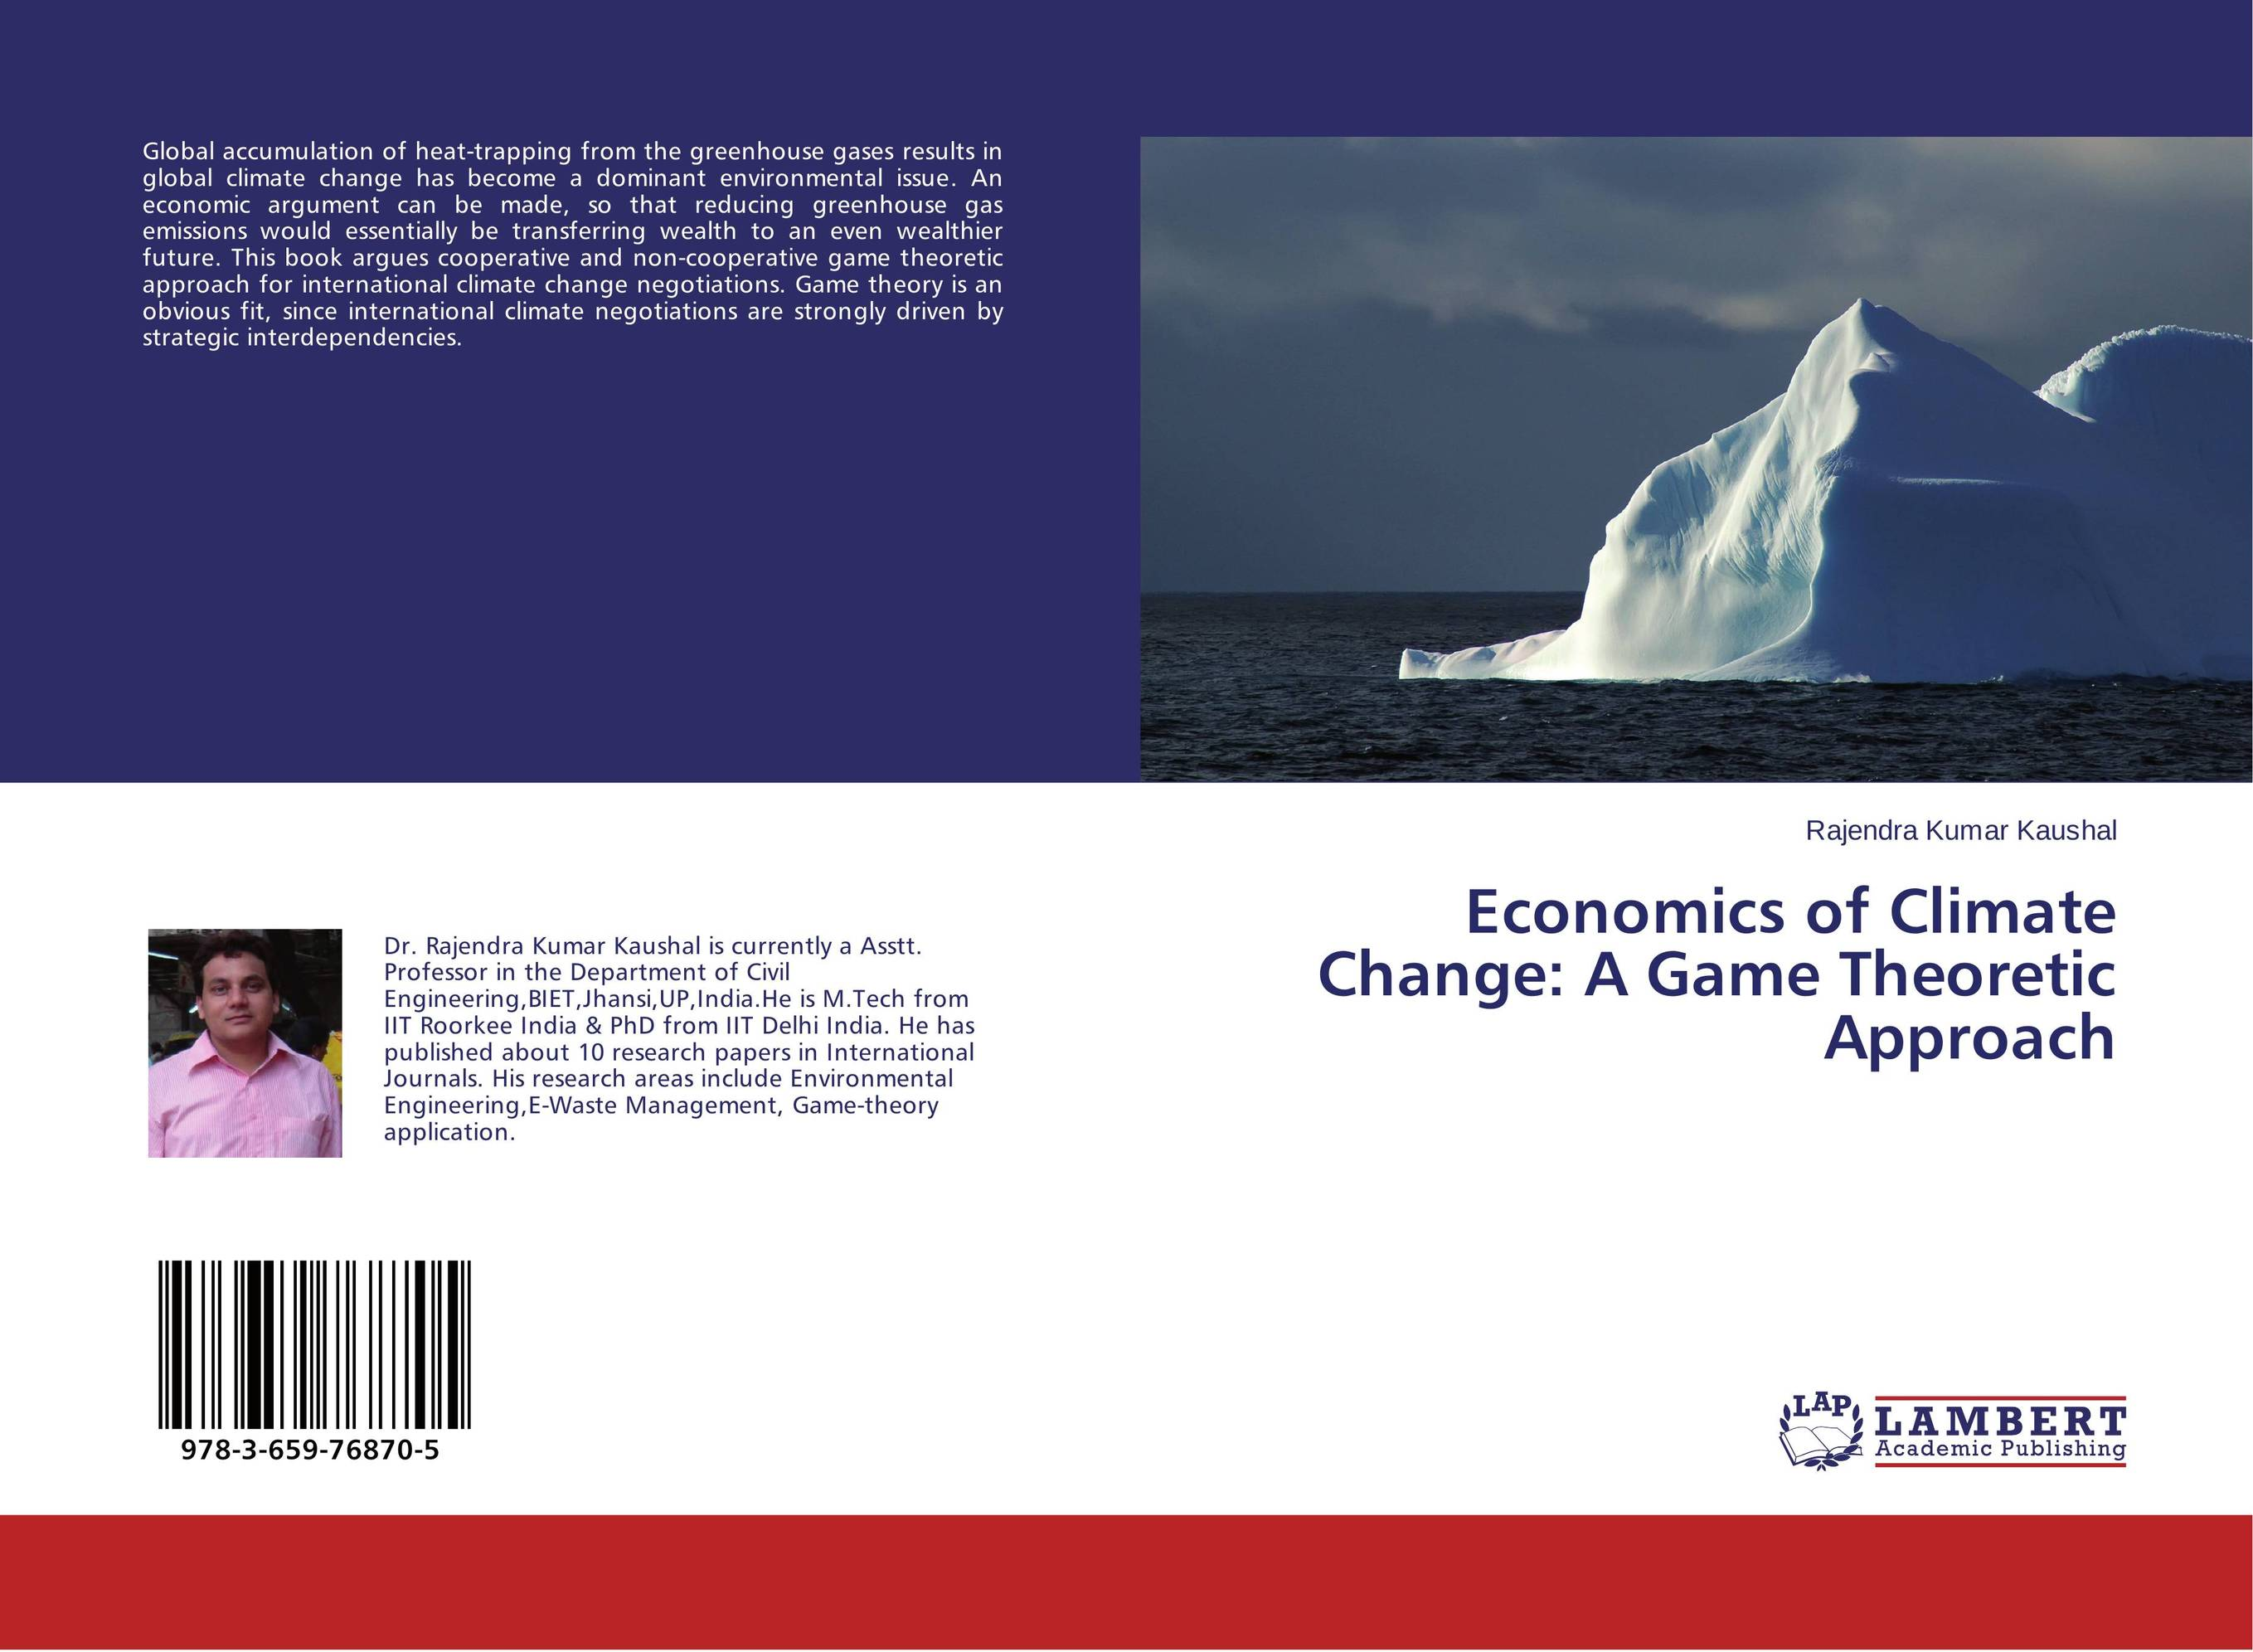 Economics of Climate Change: A Game Theoretic Approach